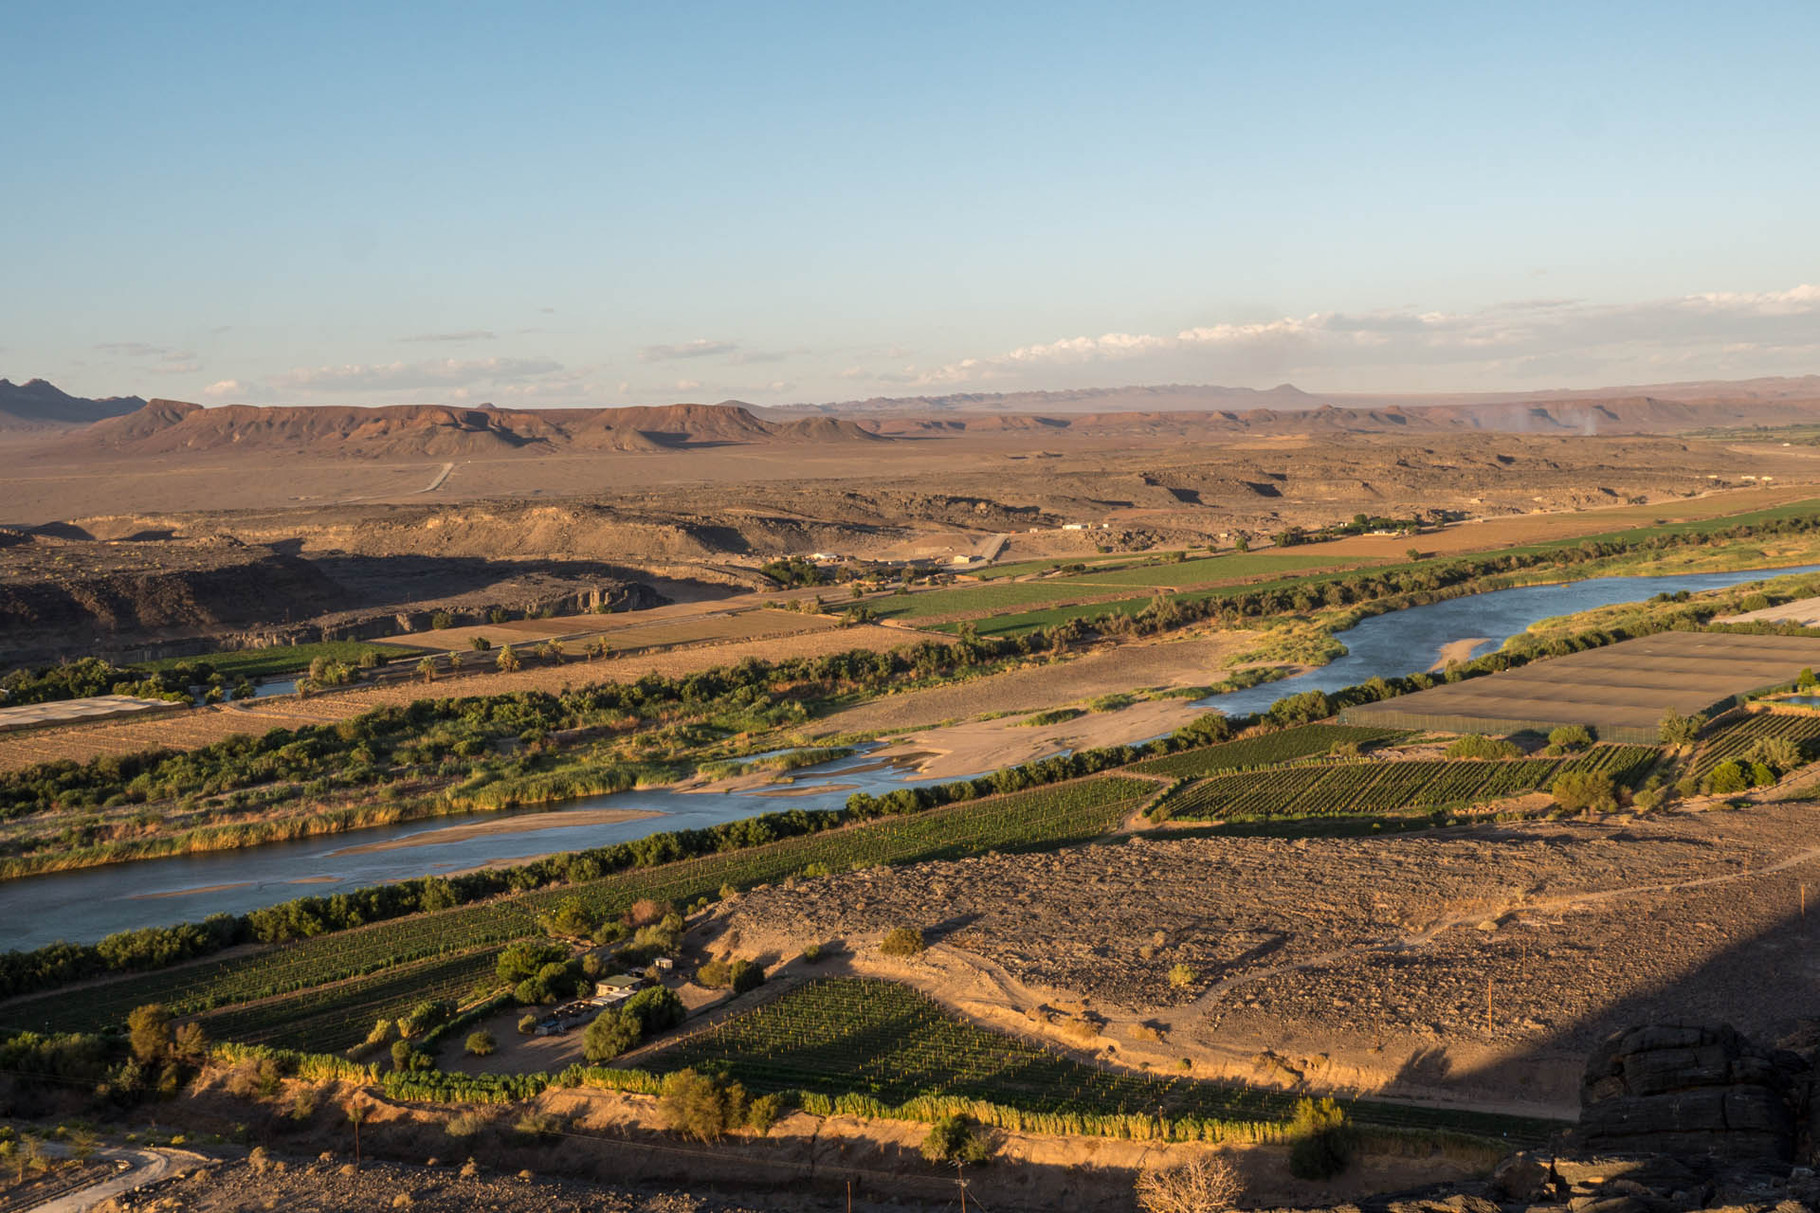 Orange/Gariep river - Border between South Africa and Namibia